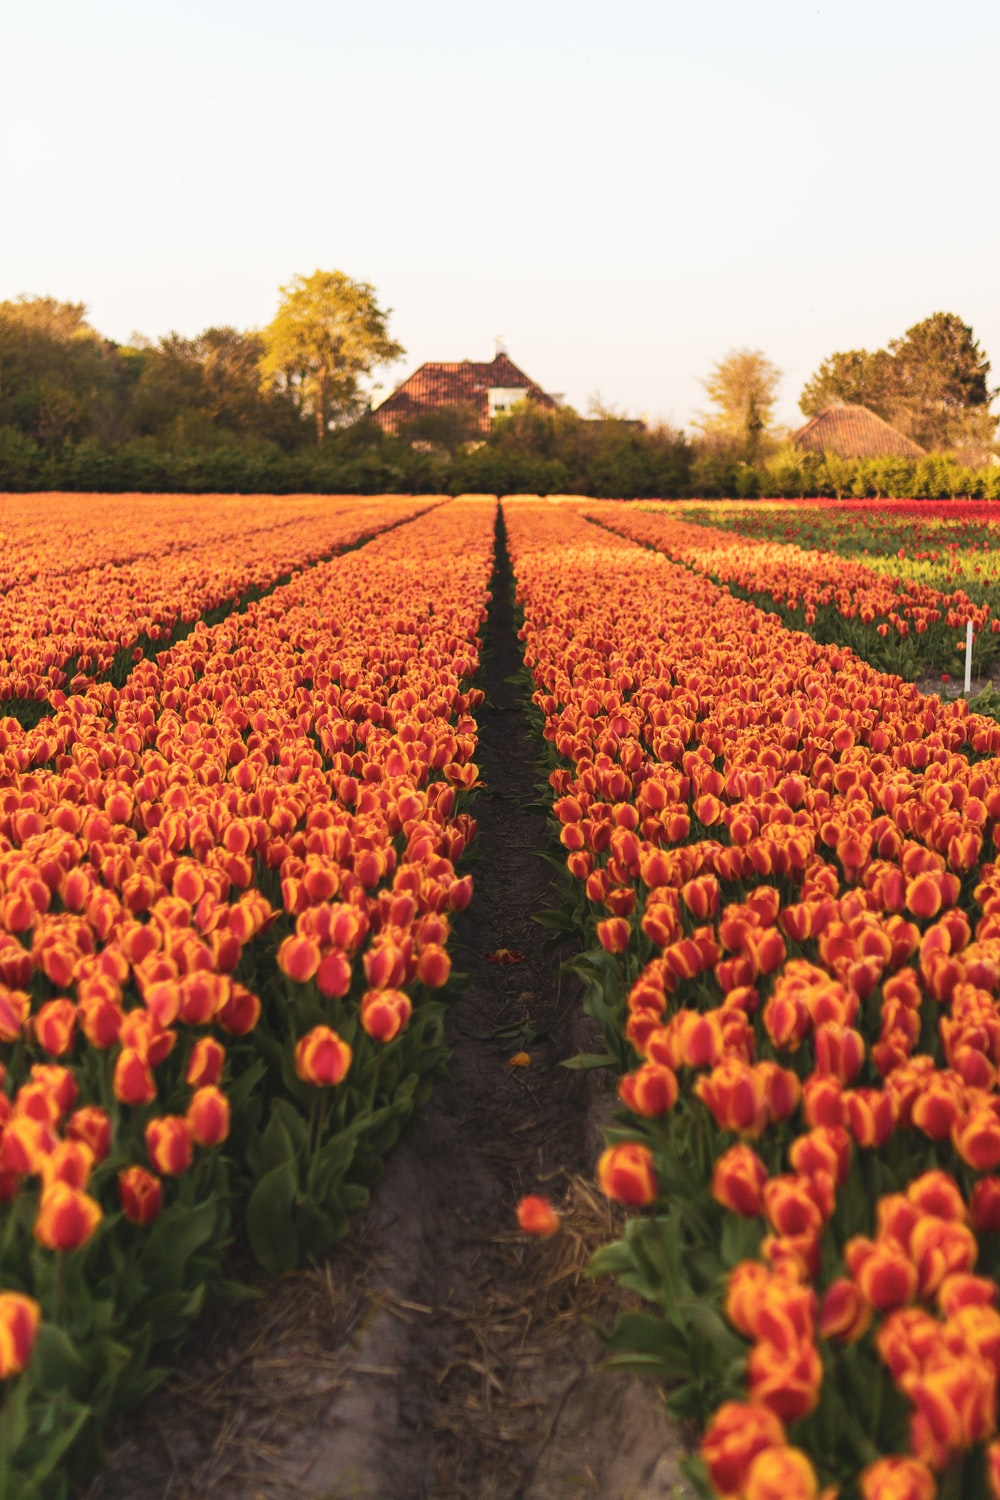 red and yellow tulips field during daytime